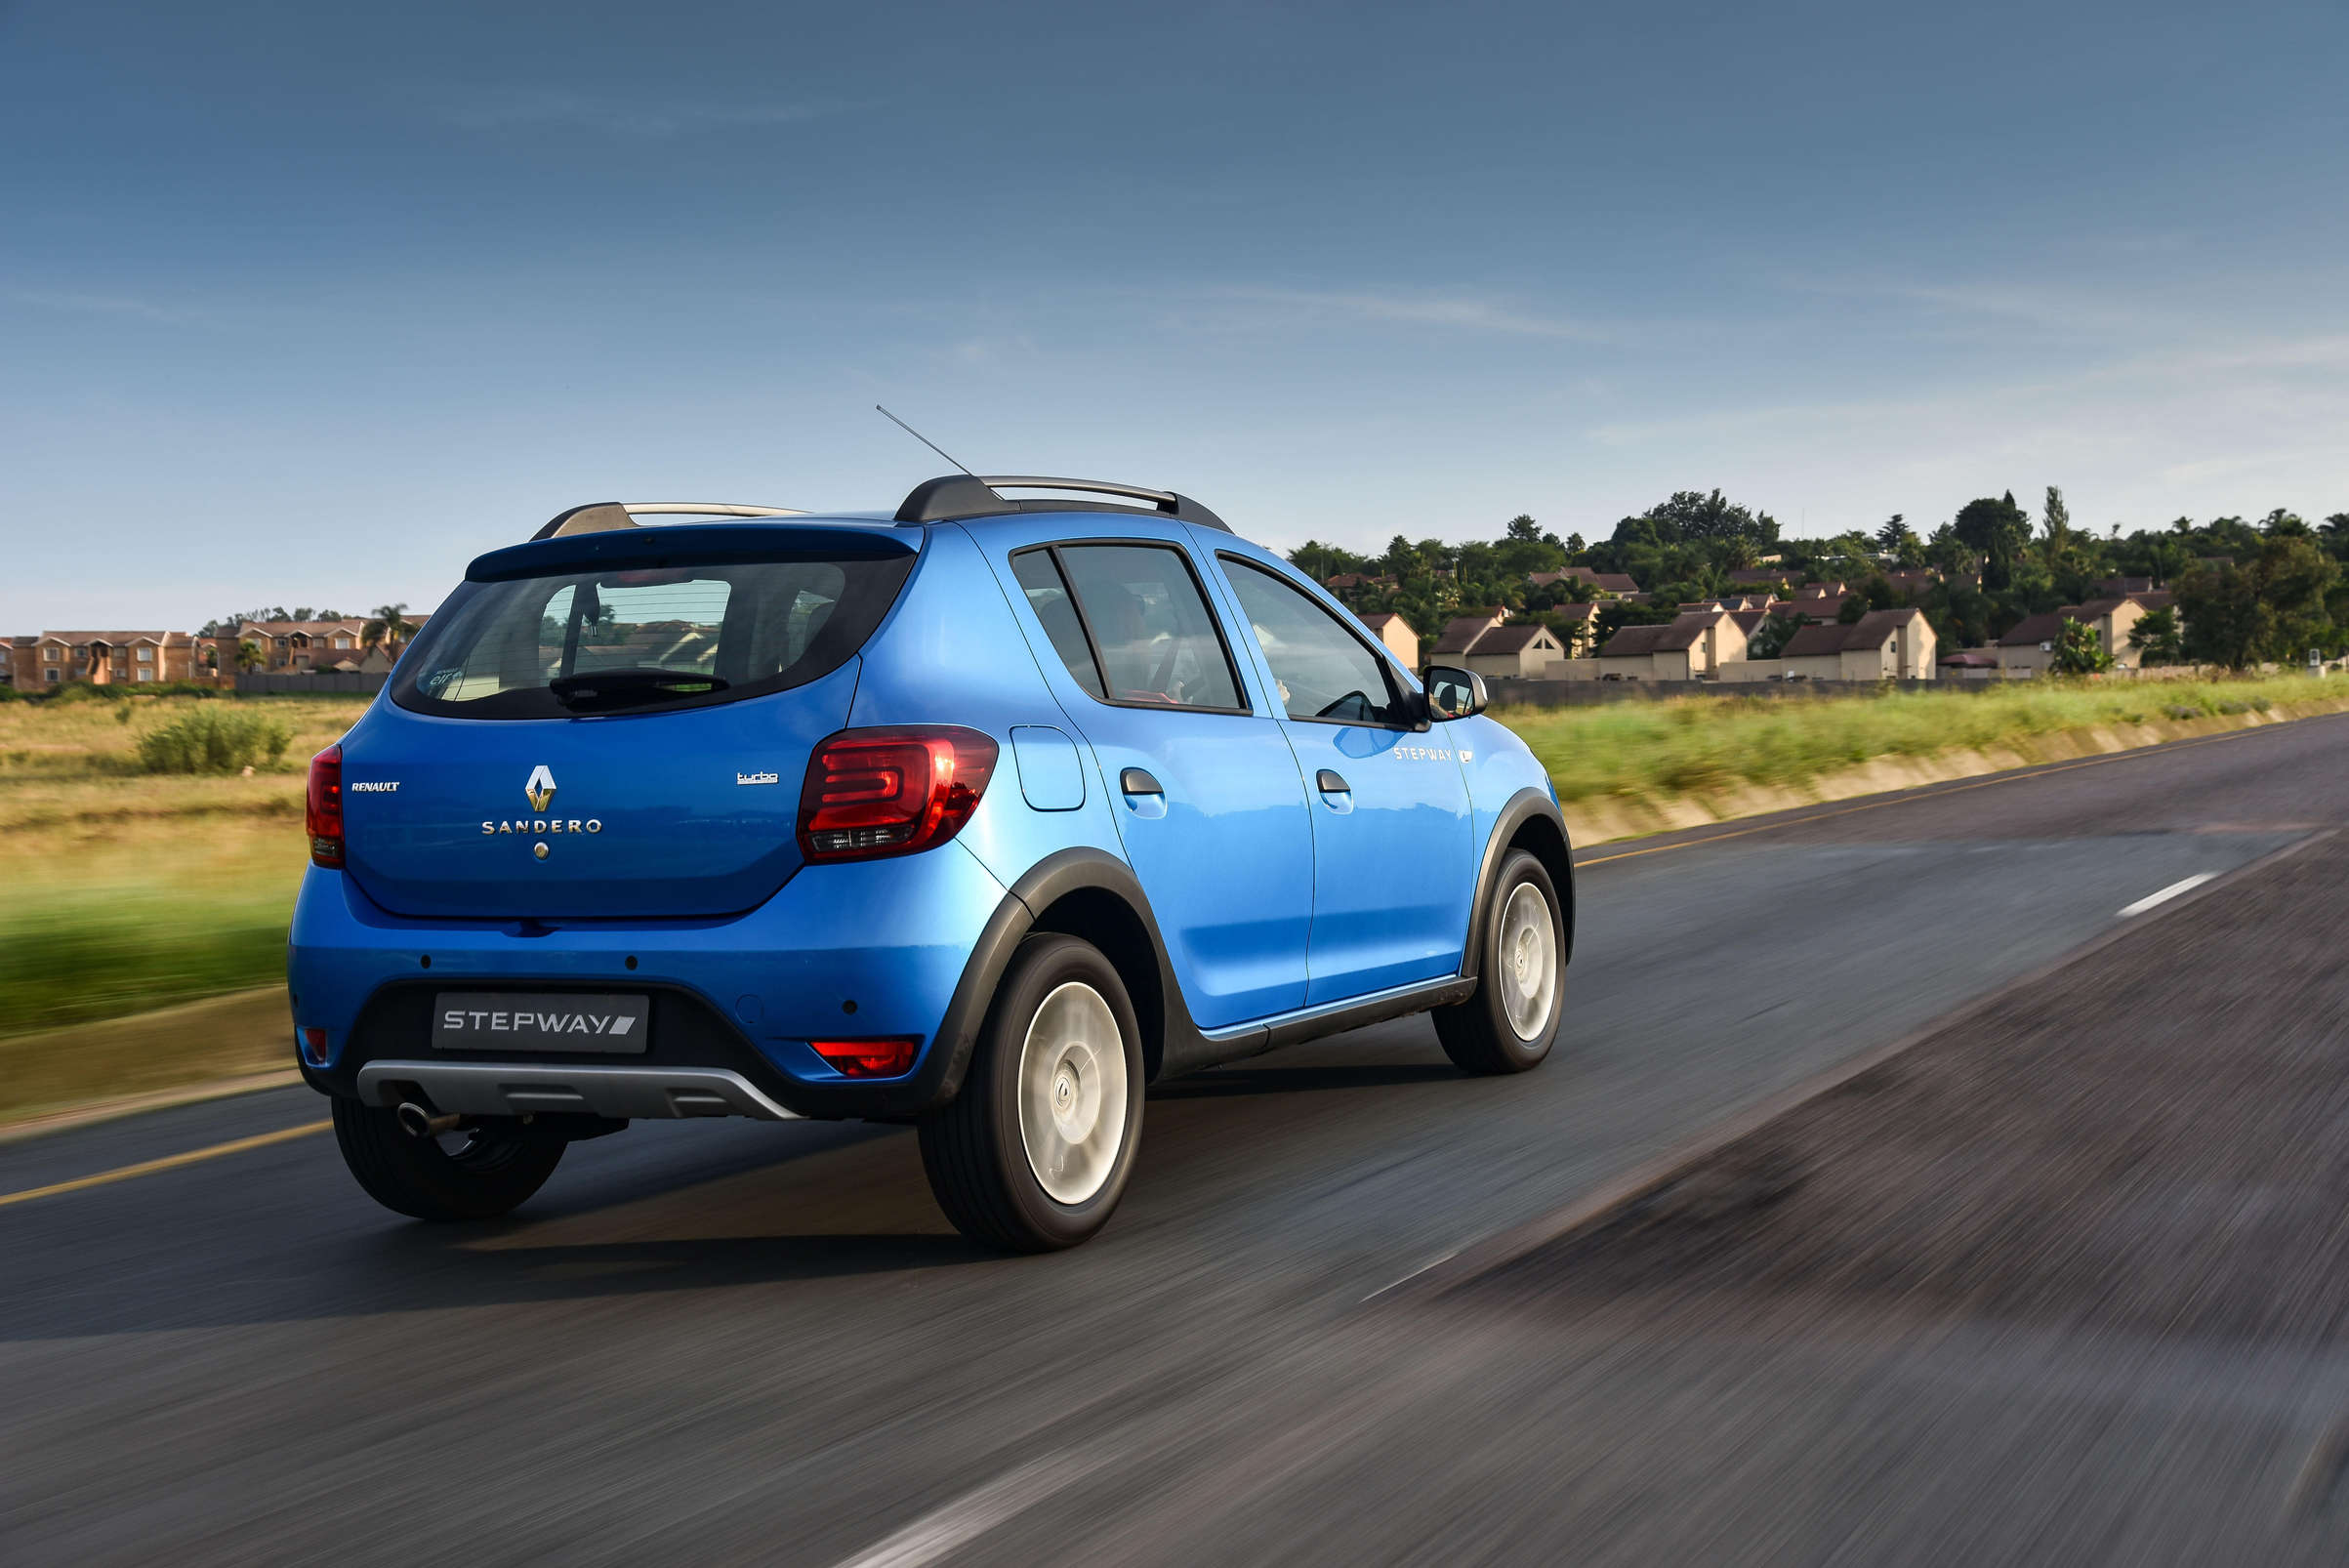 renault sandero stepway 2018. exellent 2018 the f1 inspired 900cc turbo engine comes standard in the new and updated  sandero expression revised stepway expression as well  and renault sandero stepway 2018